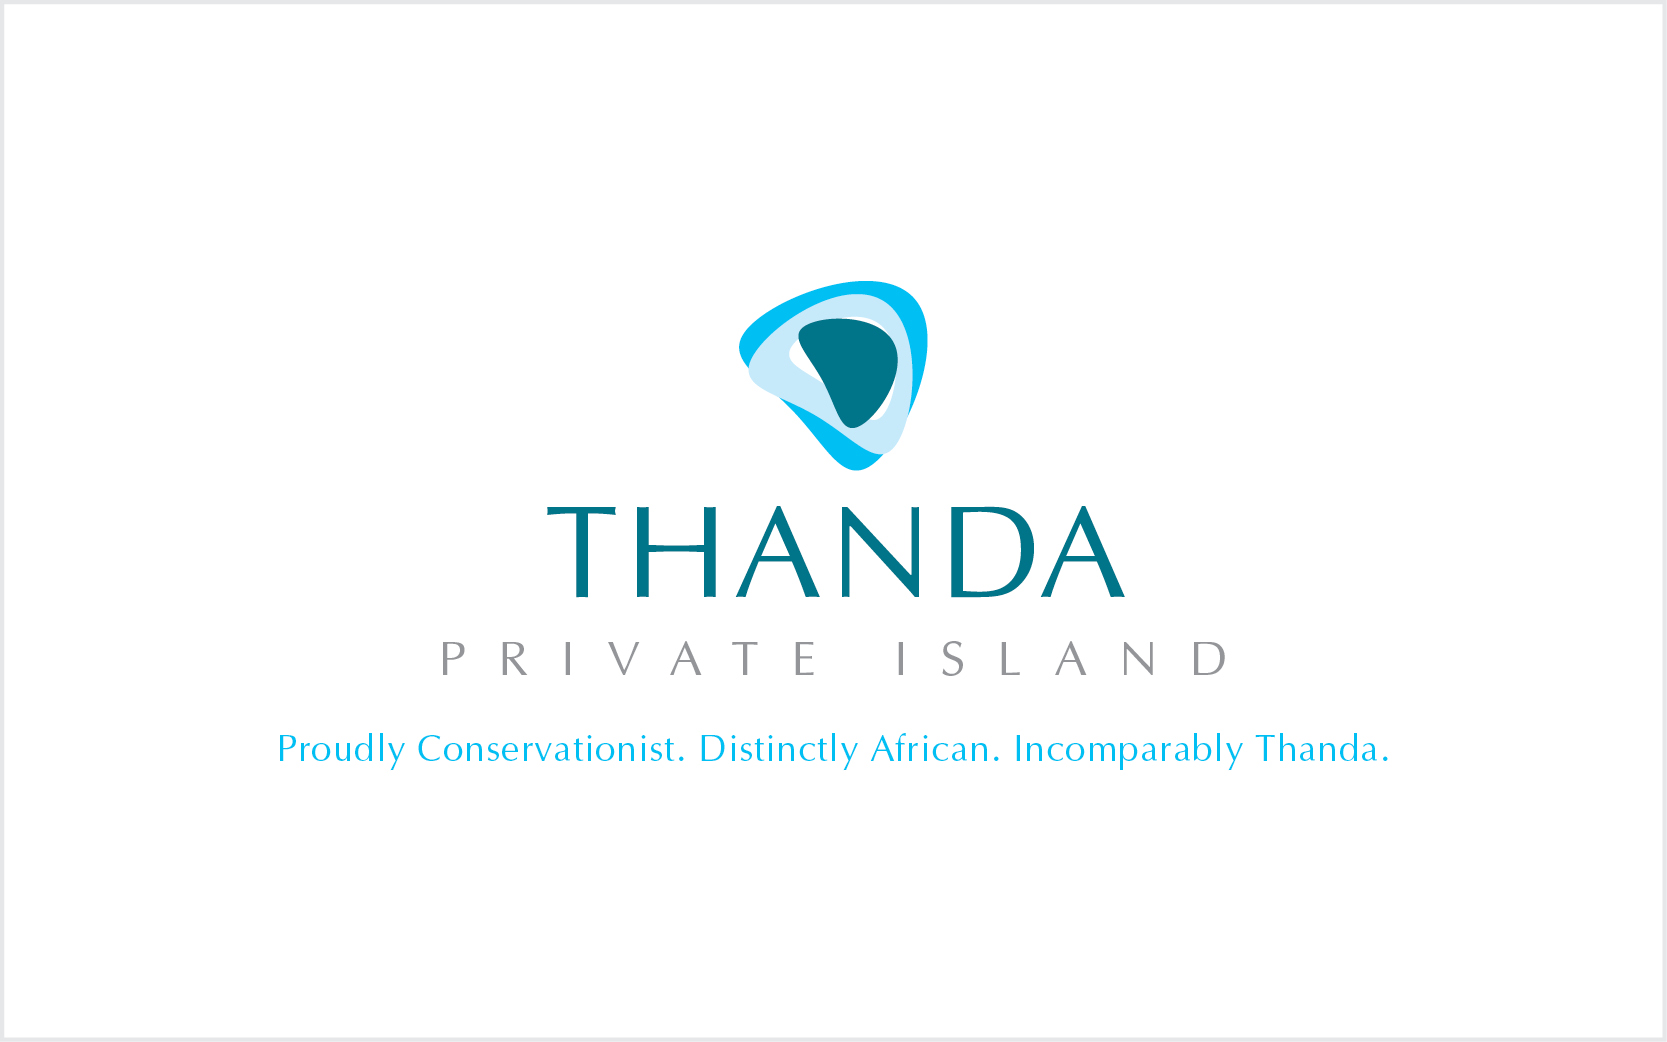 Thanda Private Island logo